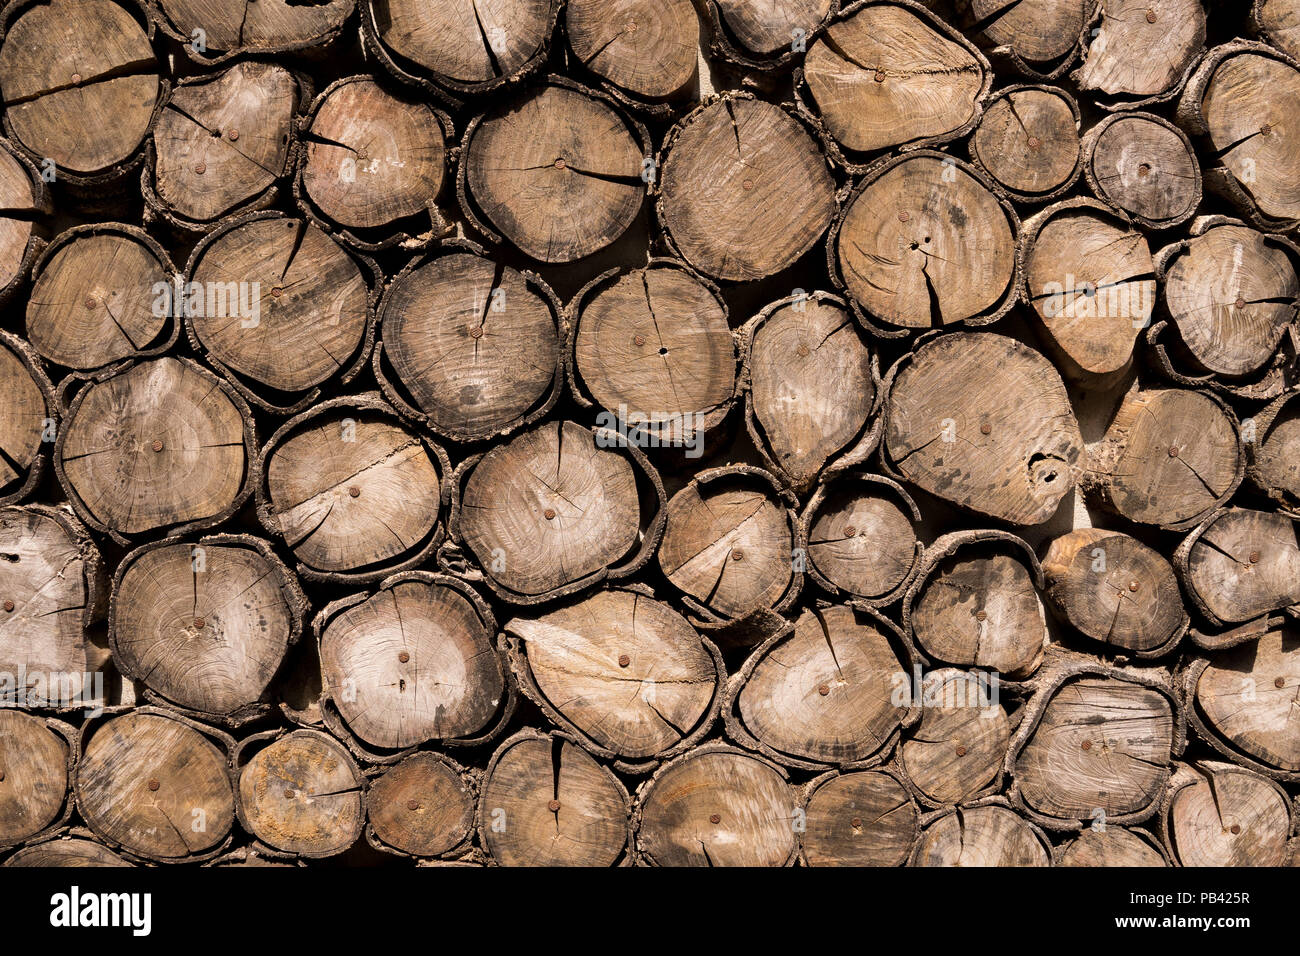 pine tree bark texture vector stockfotos & pine tree bark texture